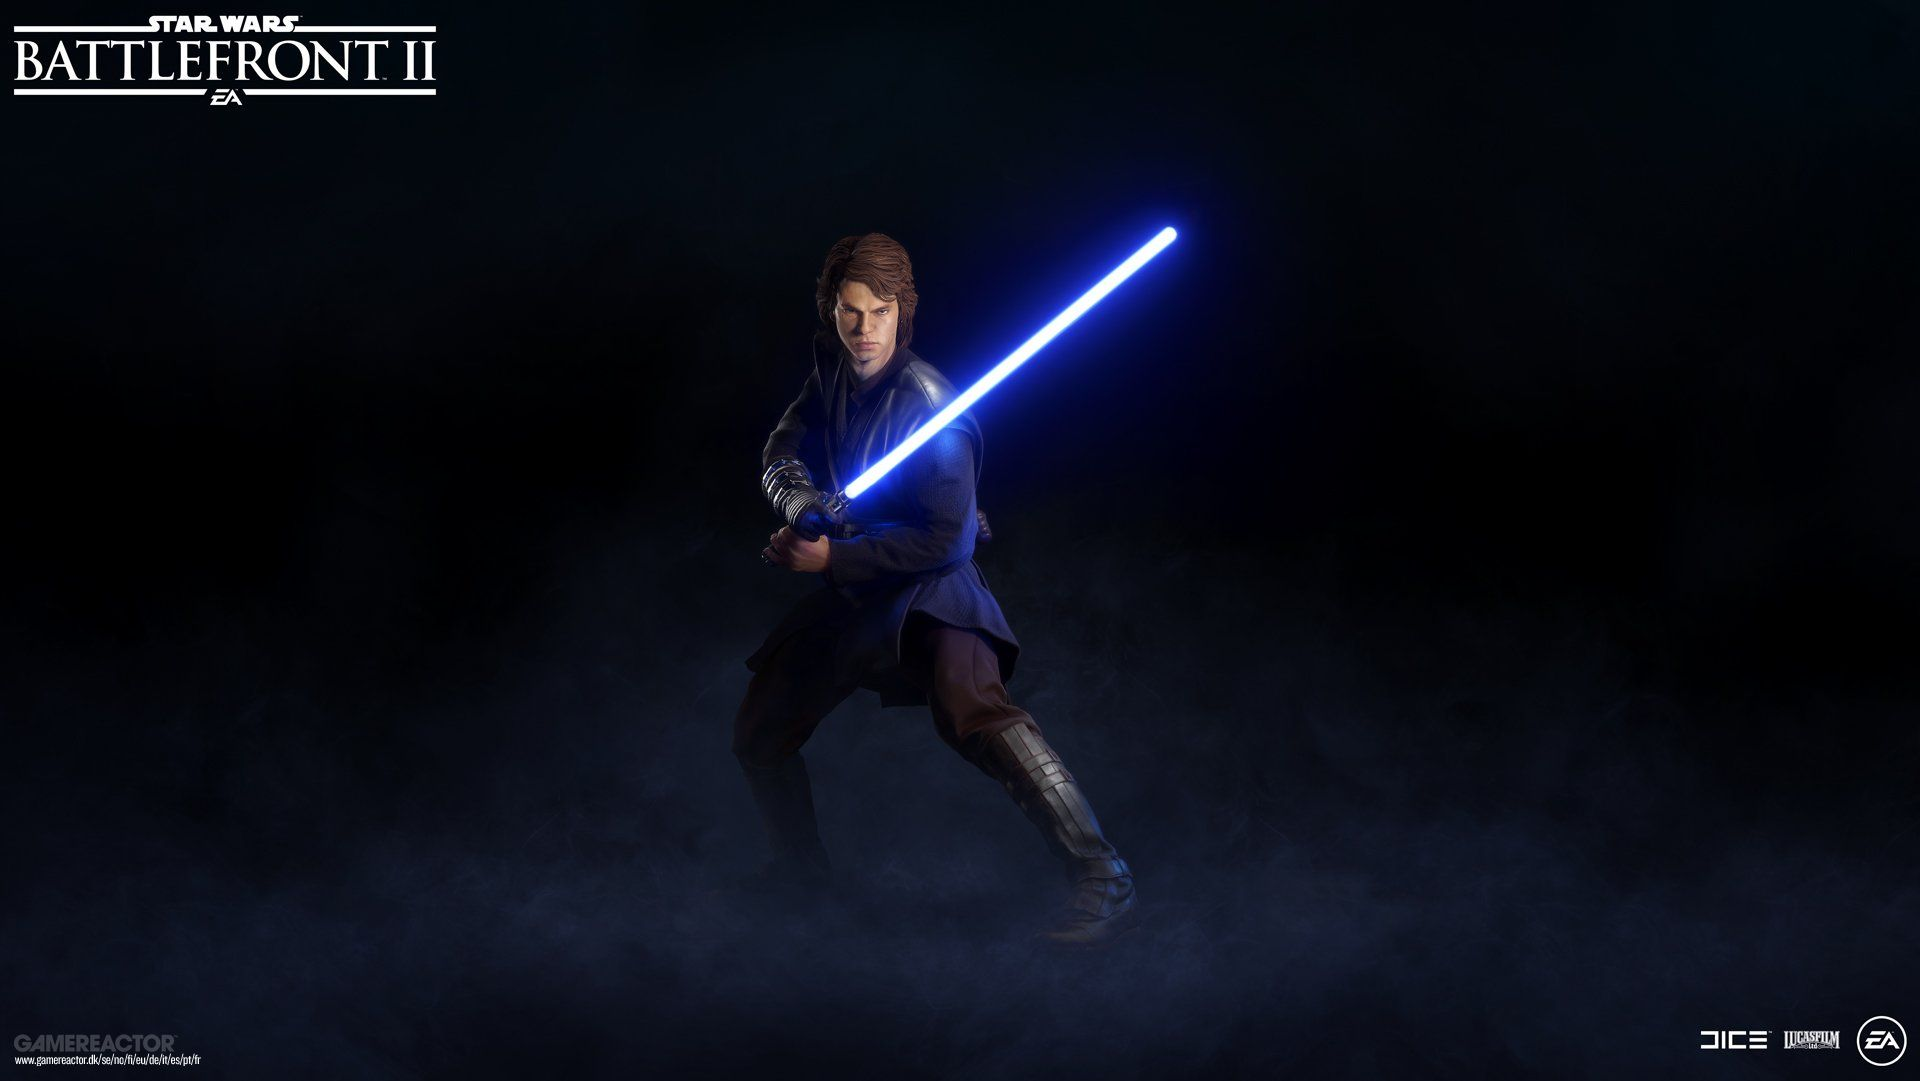 Dice Shows First Look Of Anakin In Star Wars Battlefront Ii